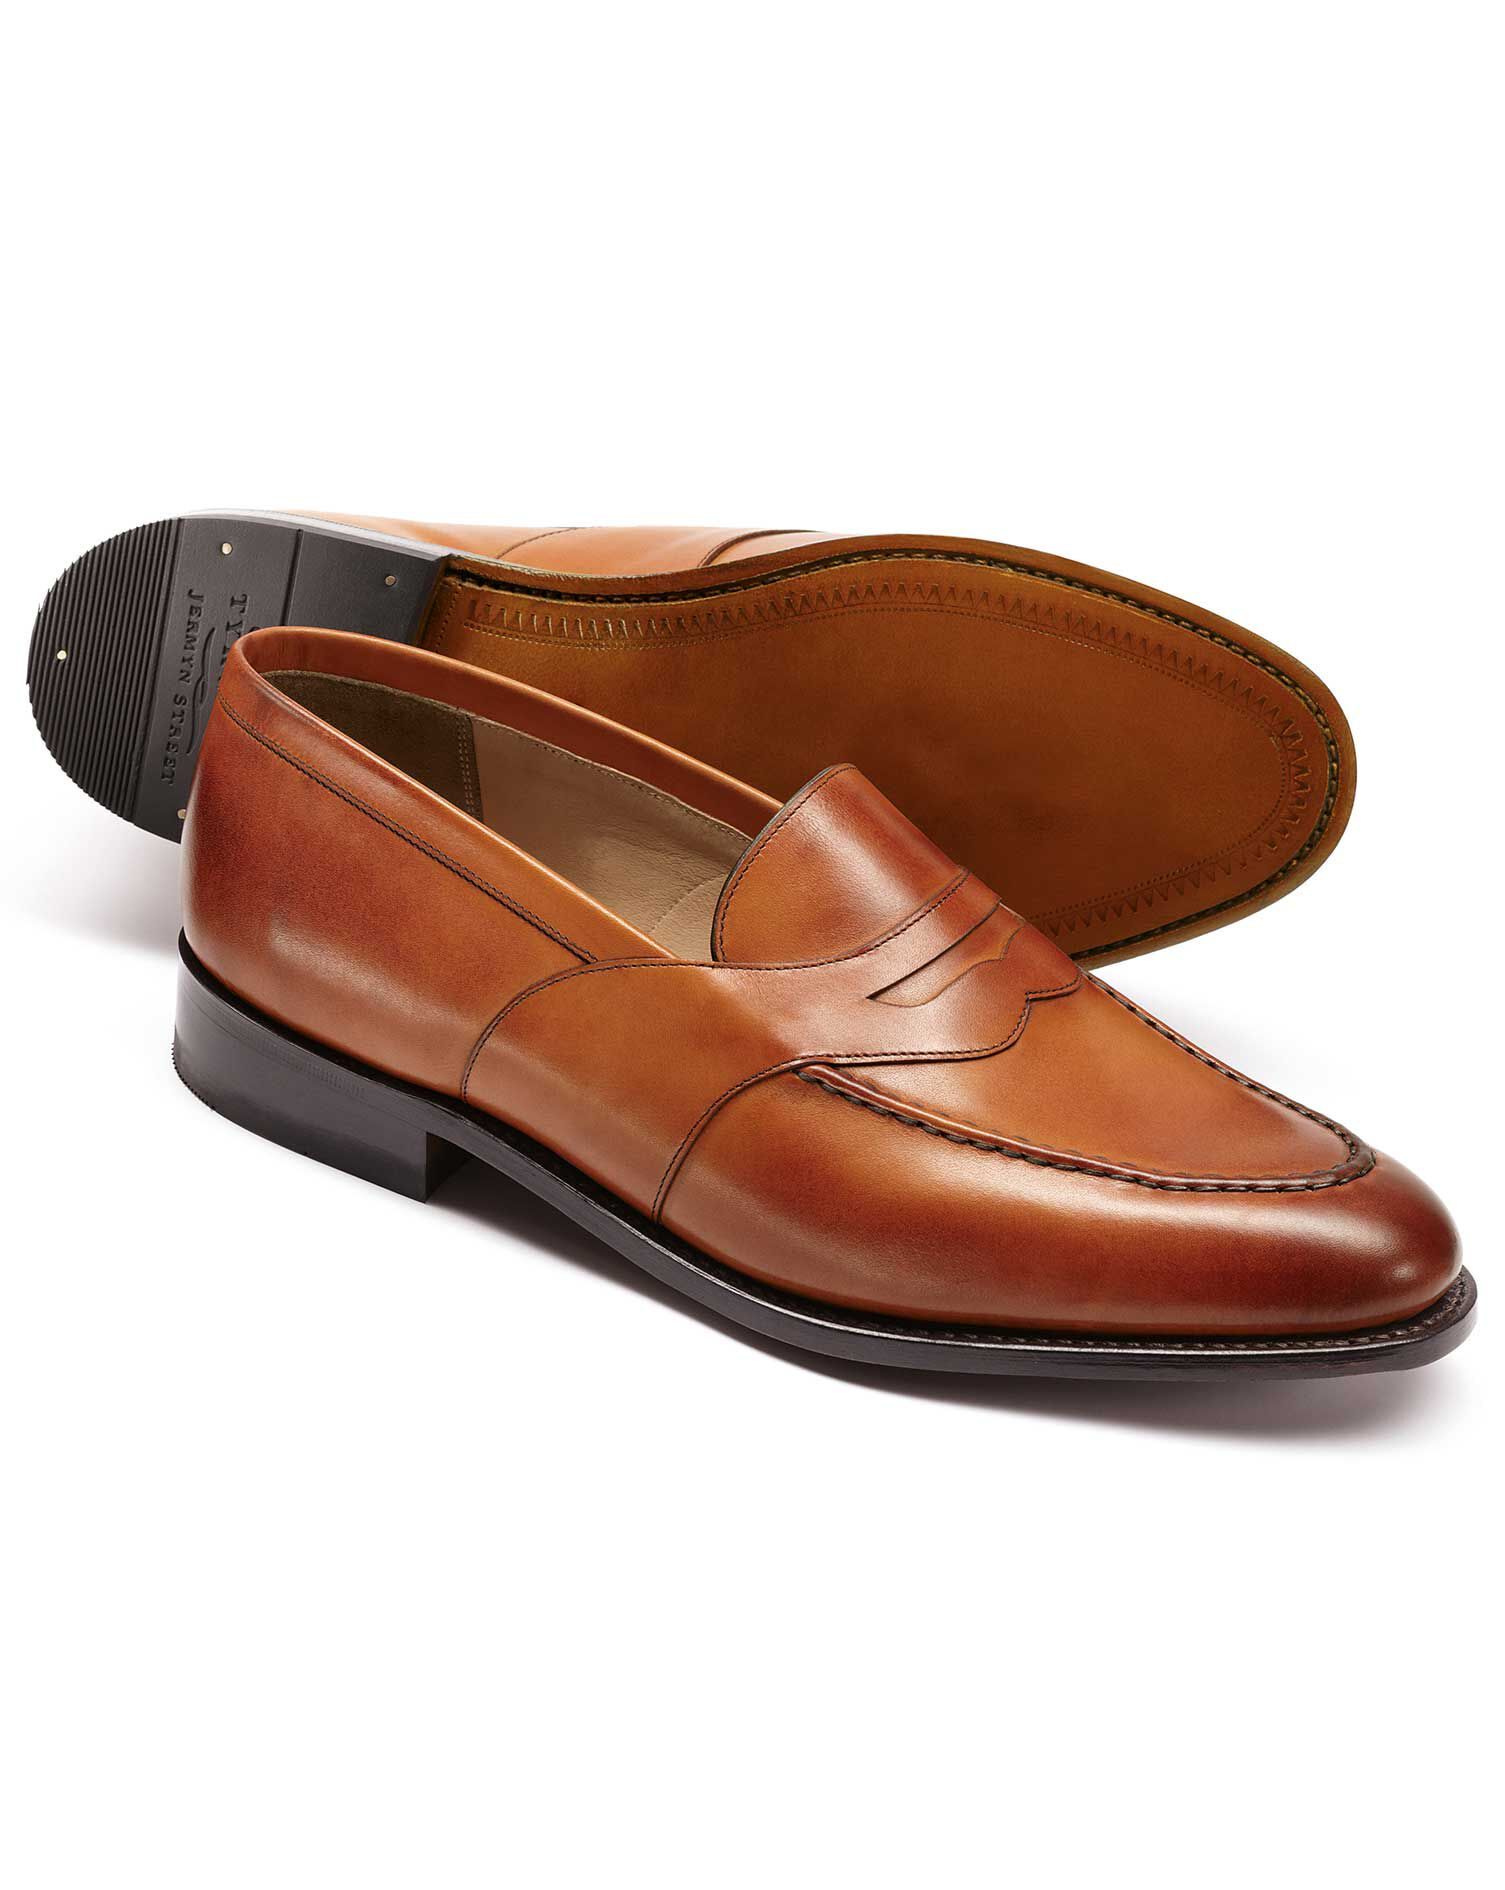 Tan Allet Loafers Size 13 R by Charles Tyrwhitt